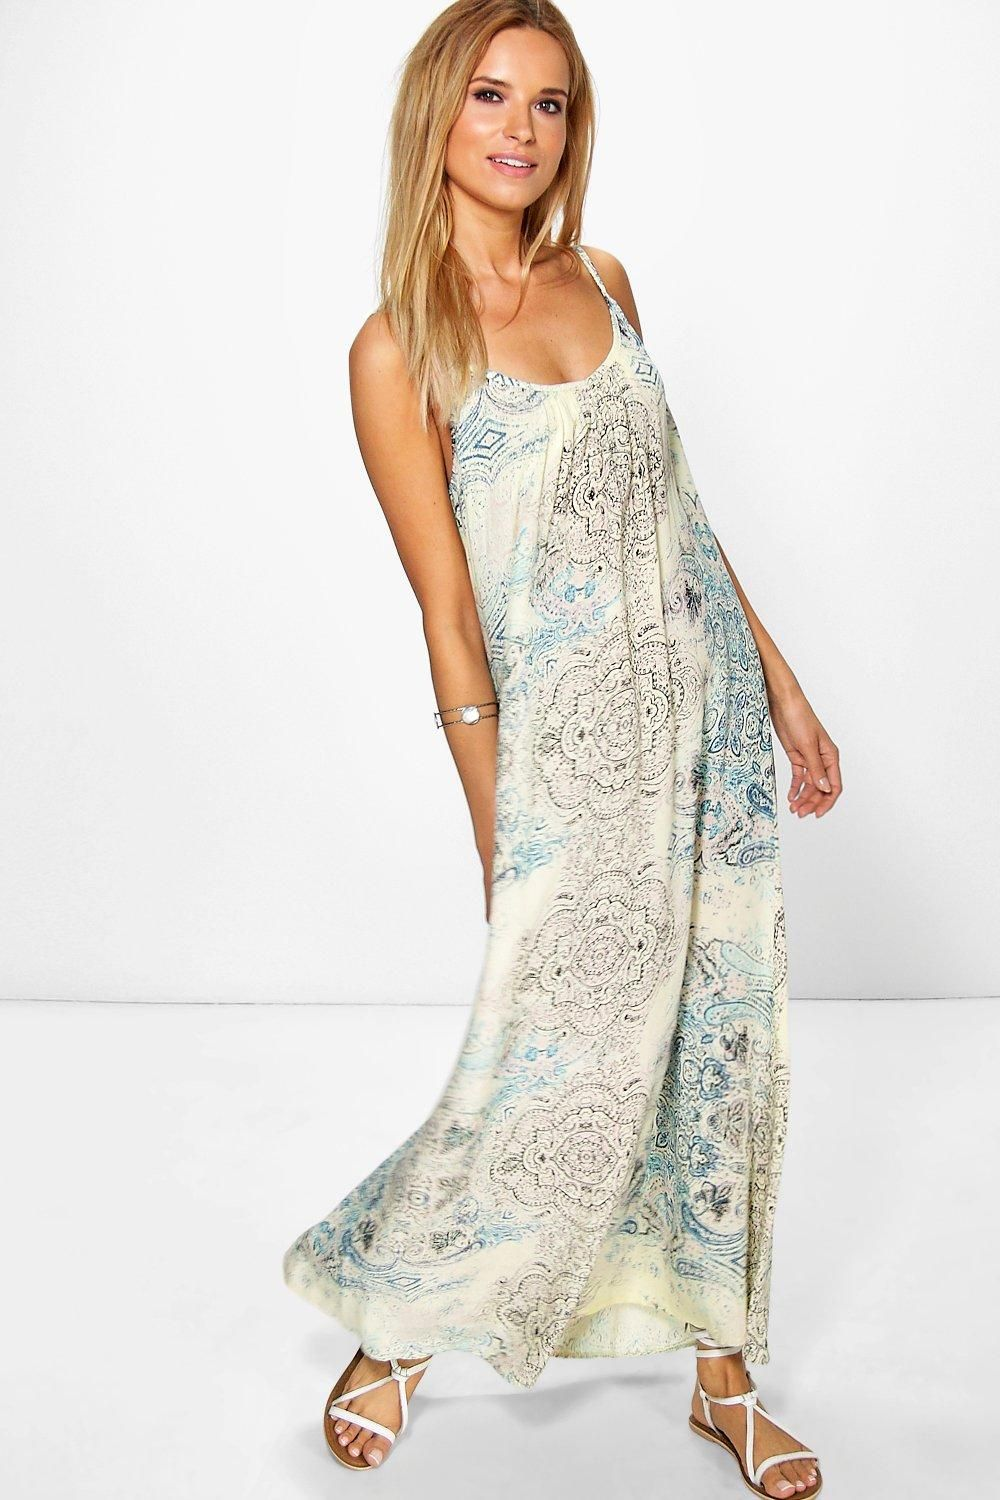 adcfac86866e Dresses are the most-wanted wardrobe item for day-to-night dressing.